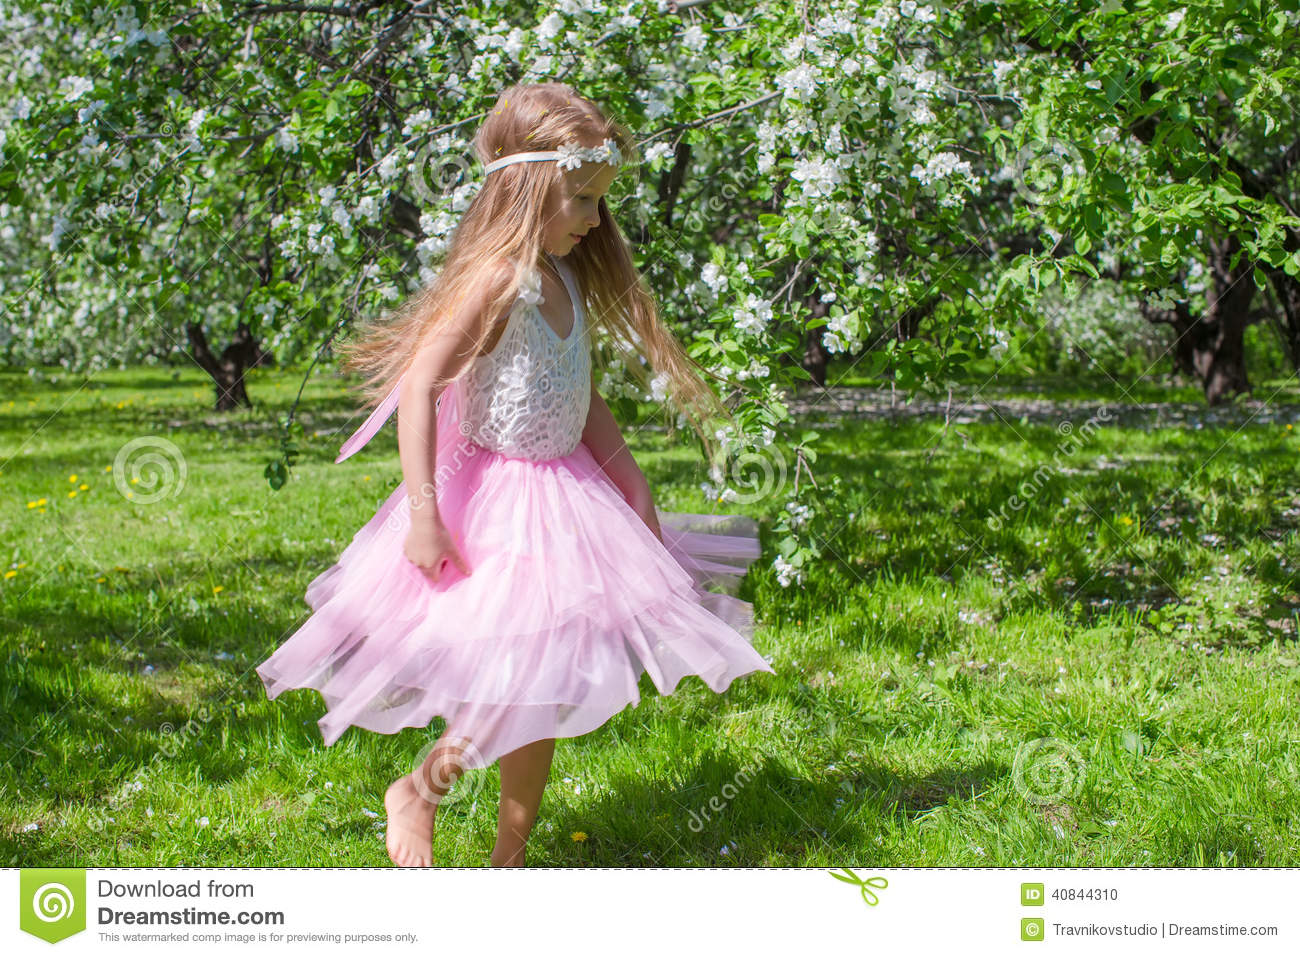 What is the apple tree dreaming about